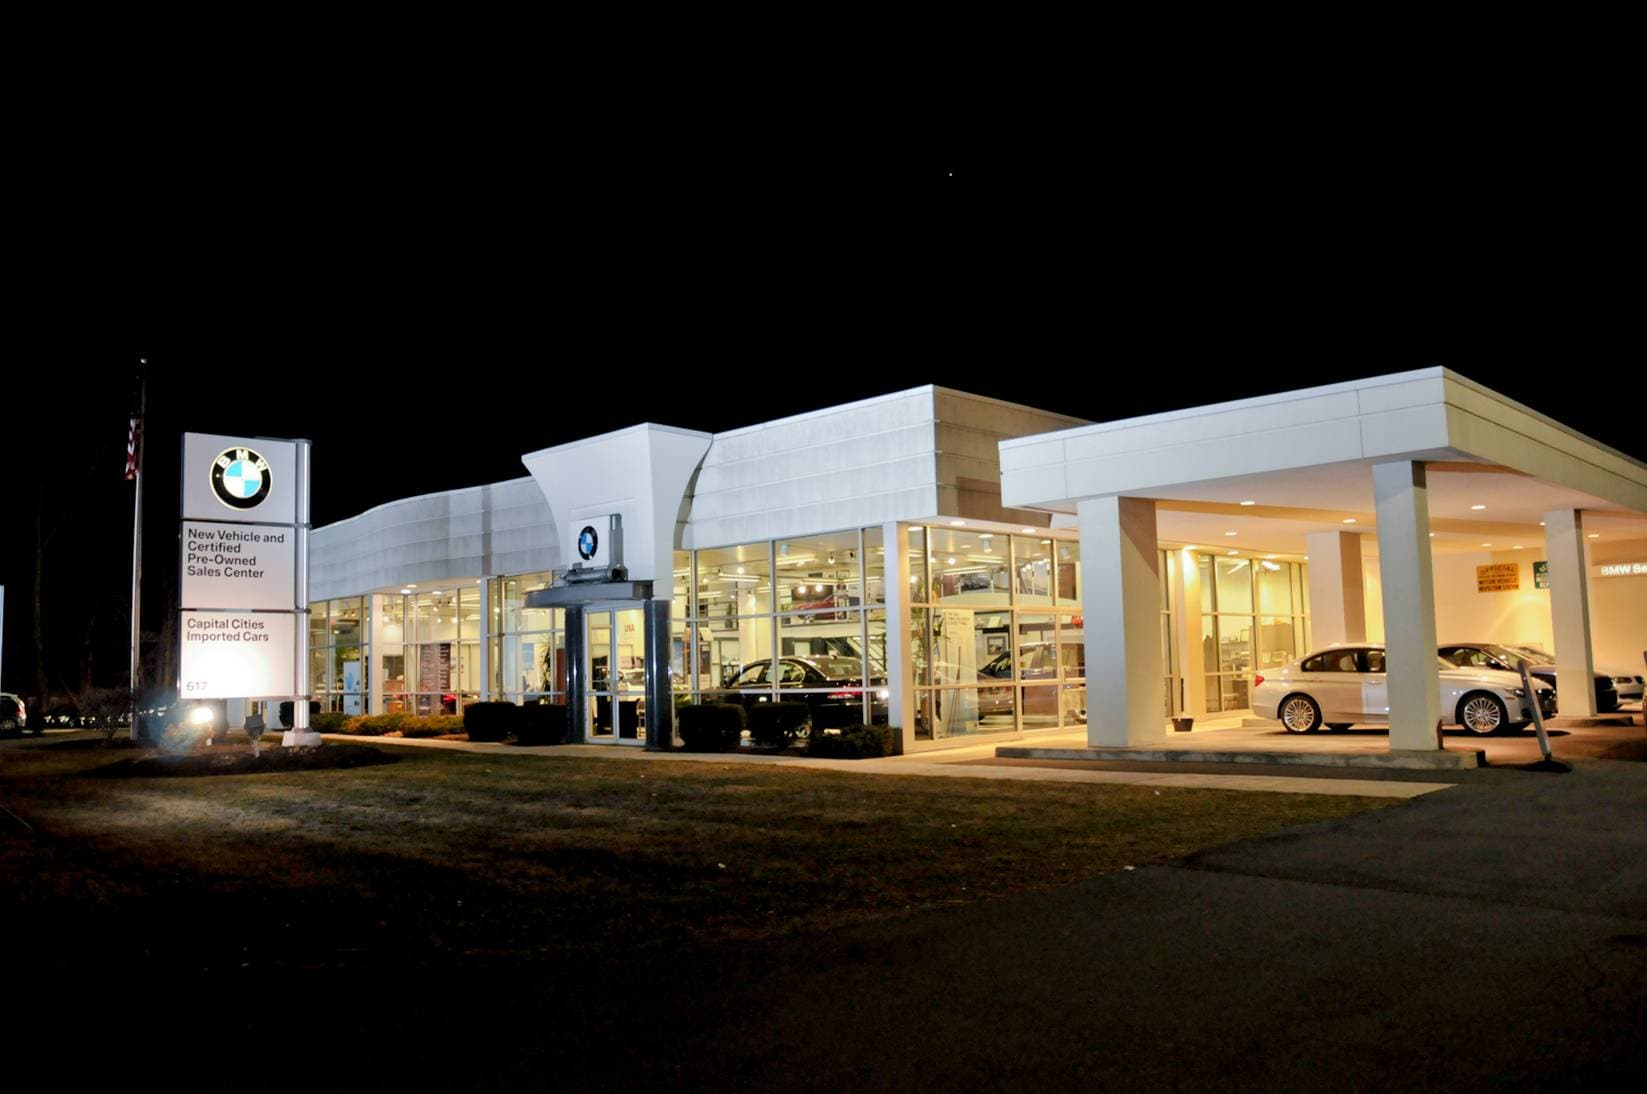 Capital Cities Bmw >> Pre Owned Bmw Cars Suvs In Albany Ny Used Car Dealership Near Me